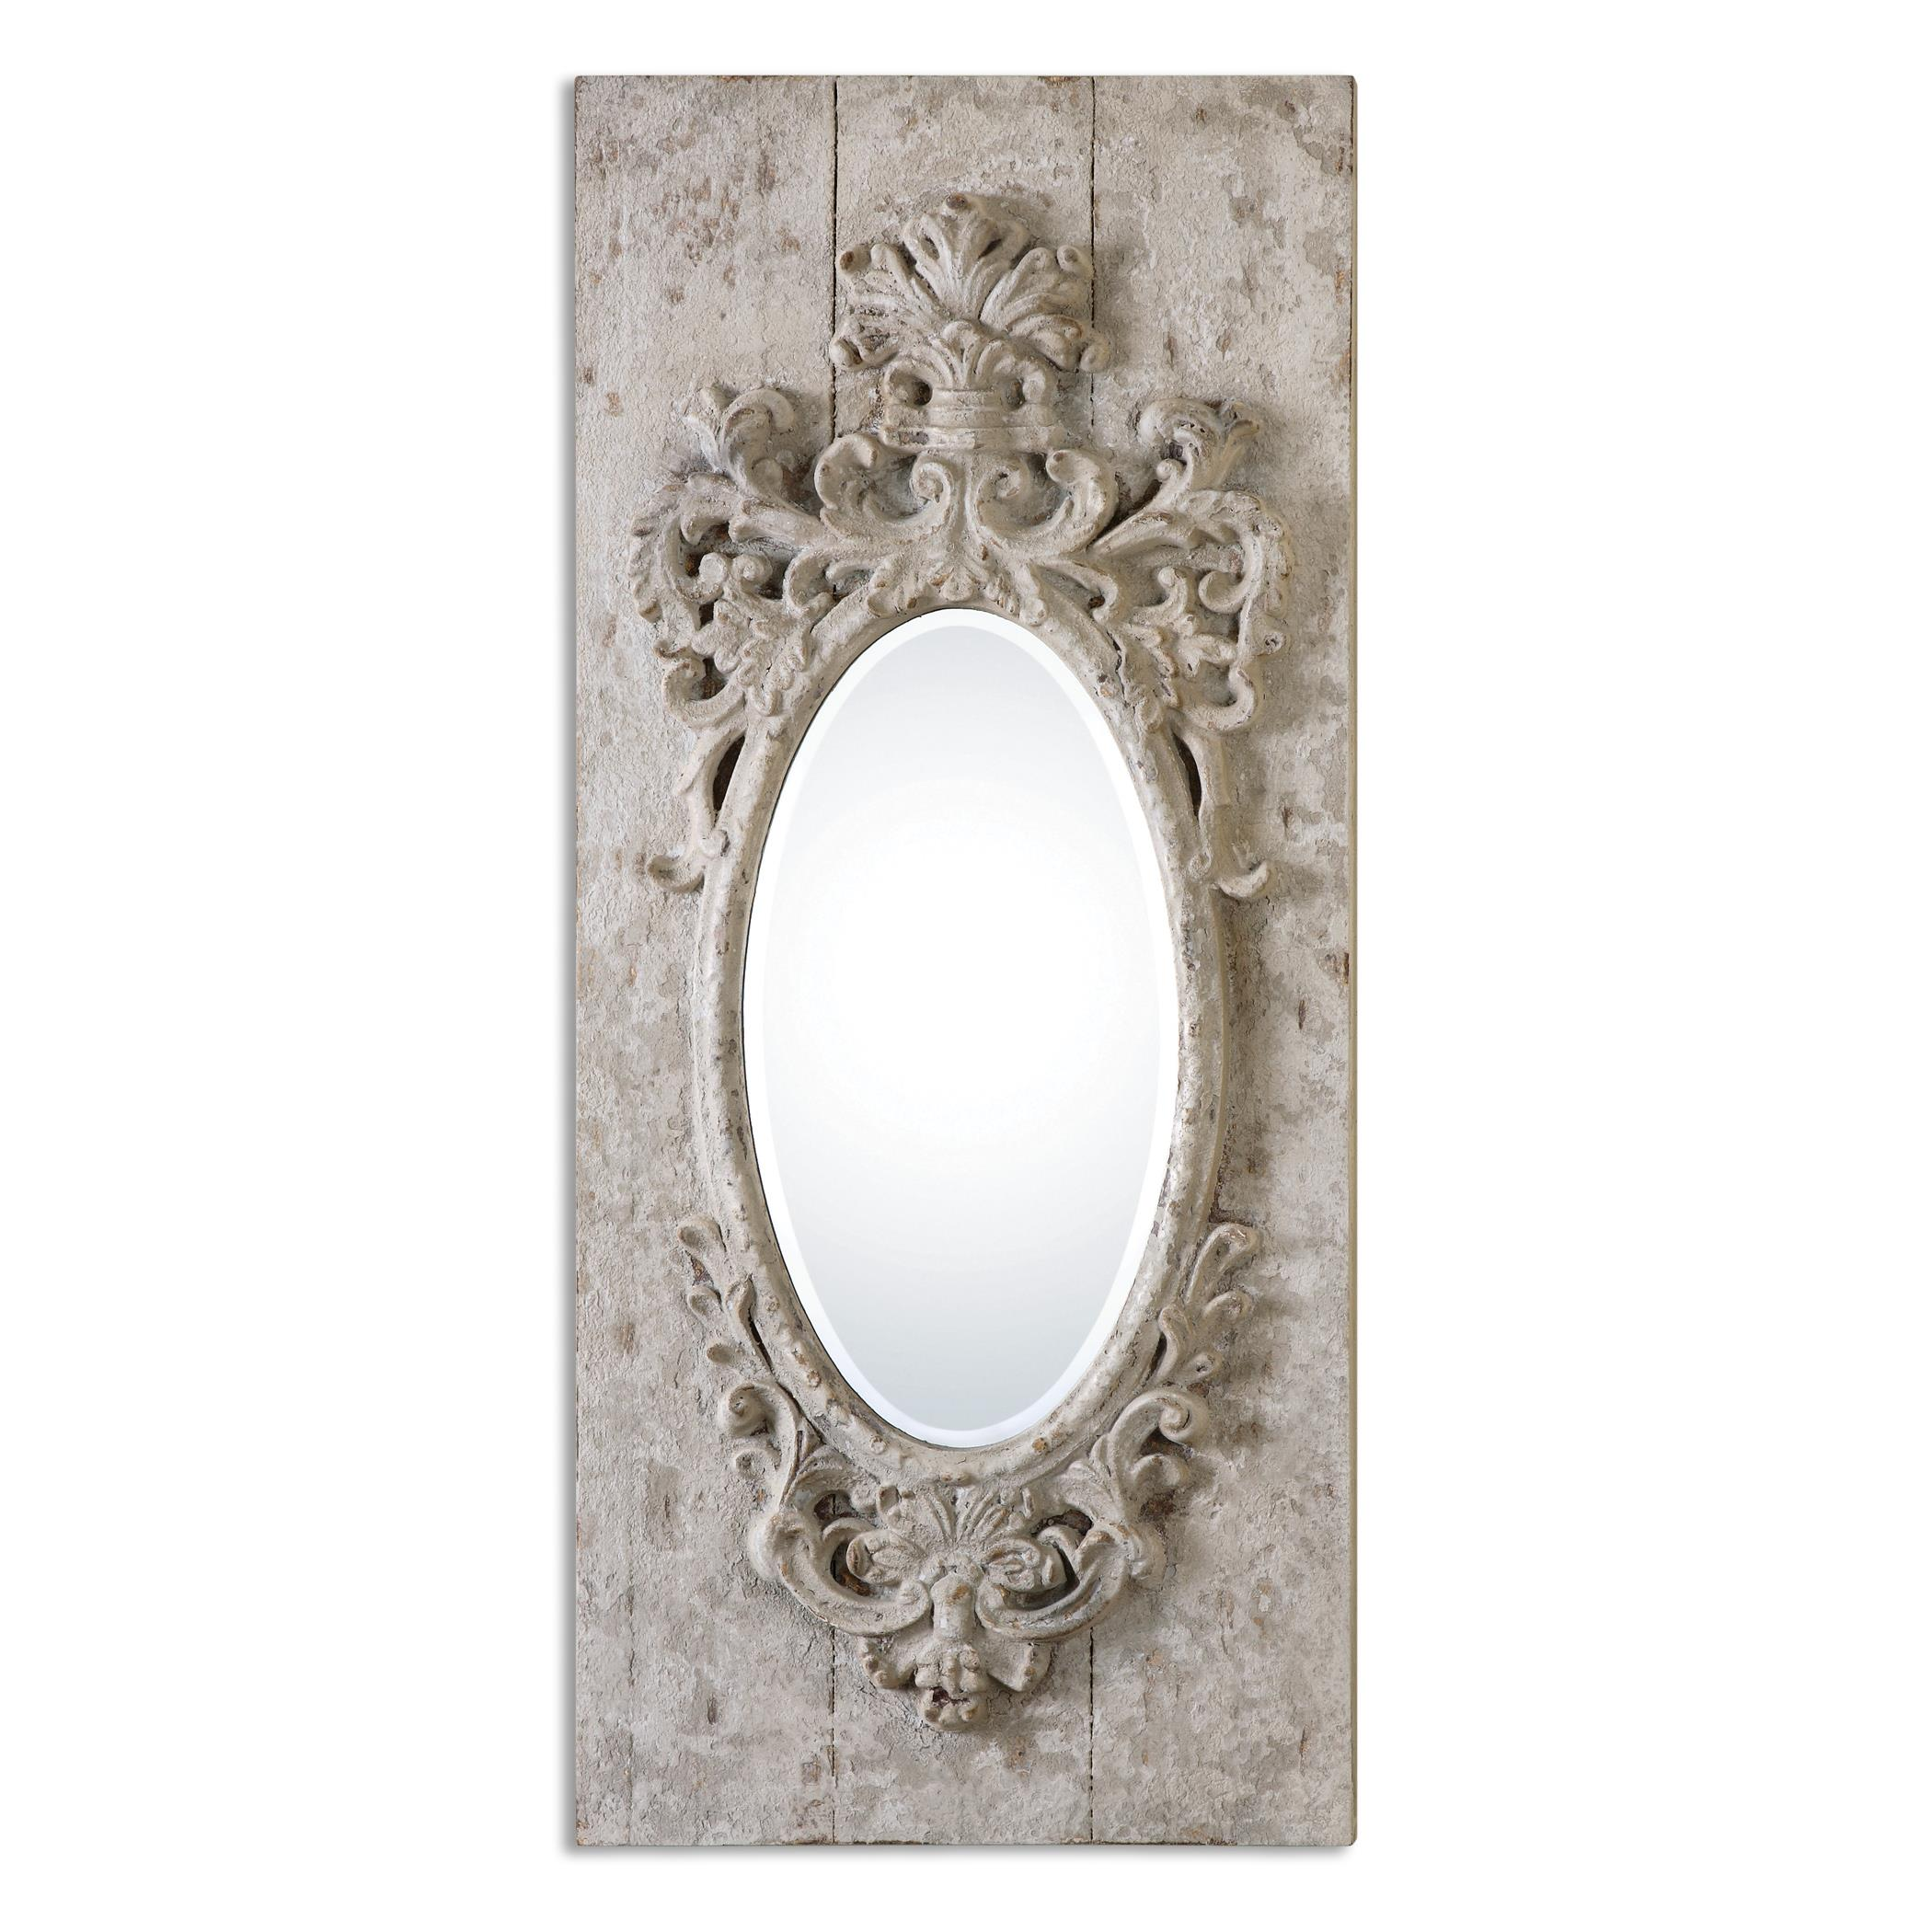 Uttermost Mirrors Guardia Gray-Ivory Oval Mirror - Item Number: 13927